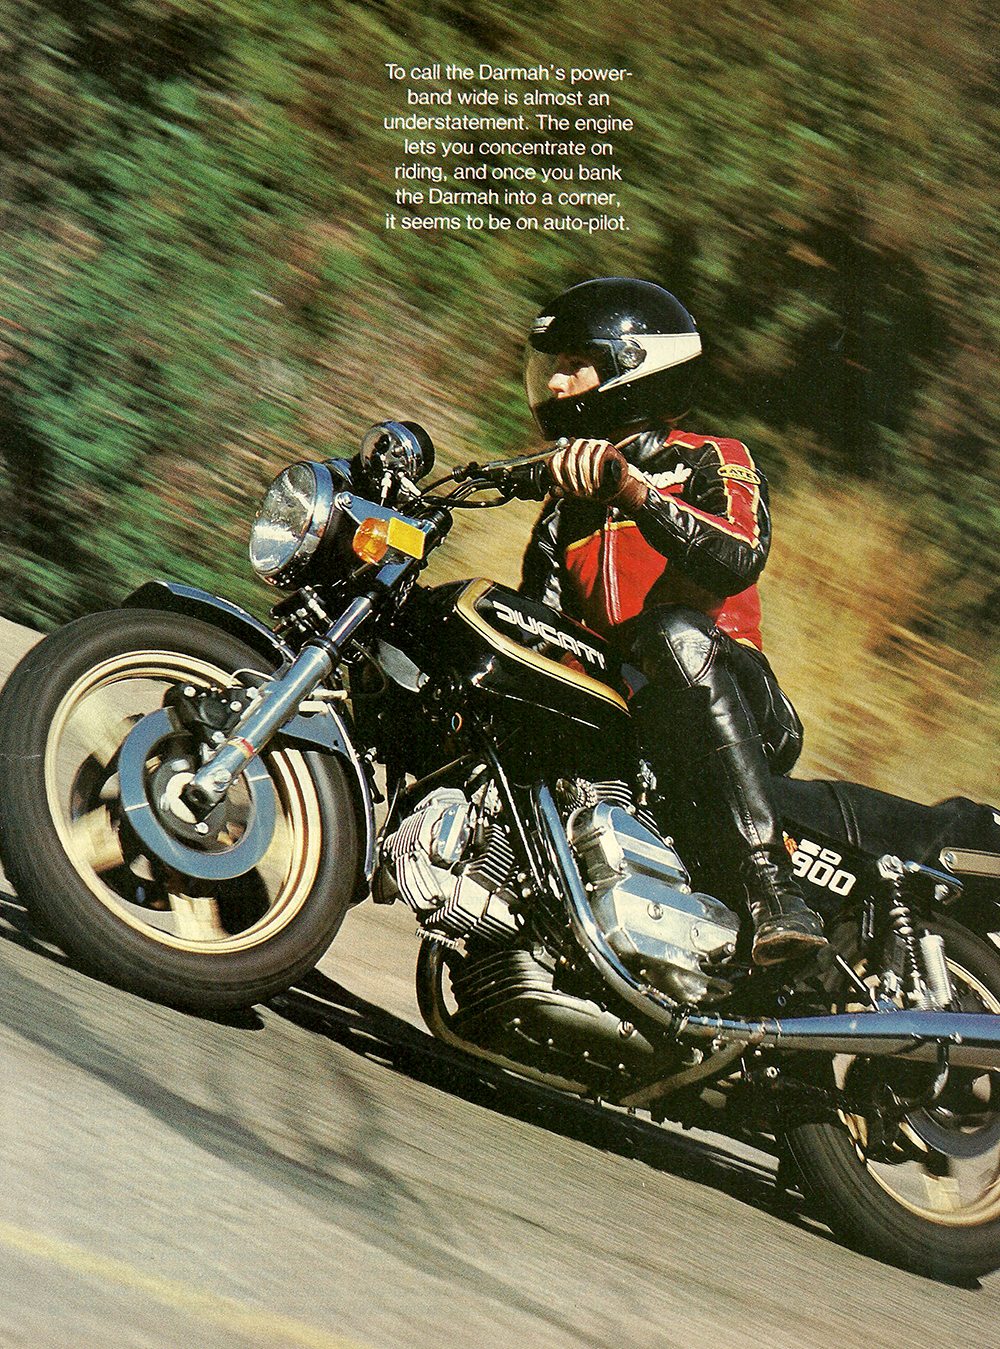 1980 Ducati Darmah 900 SD road test 04.jpg